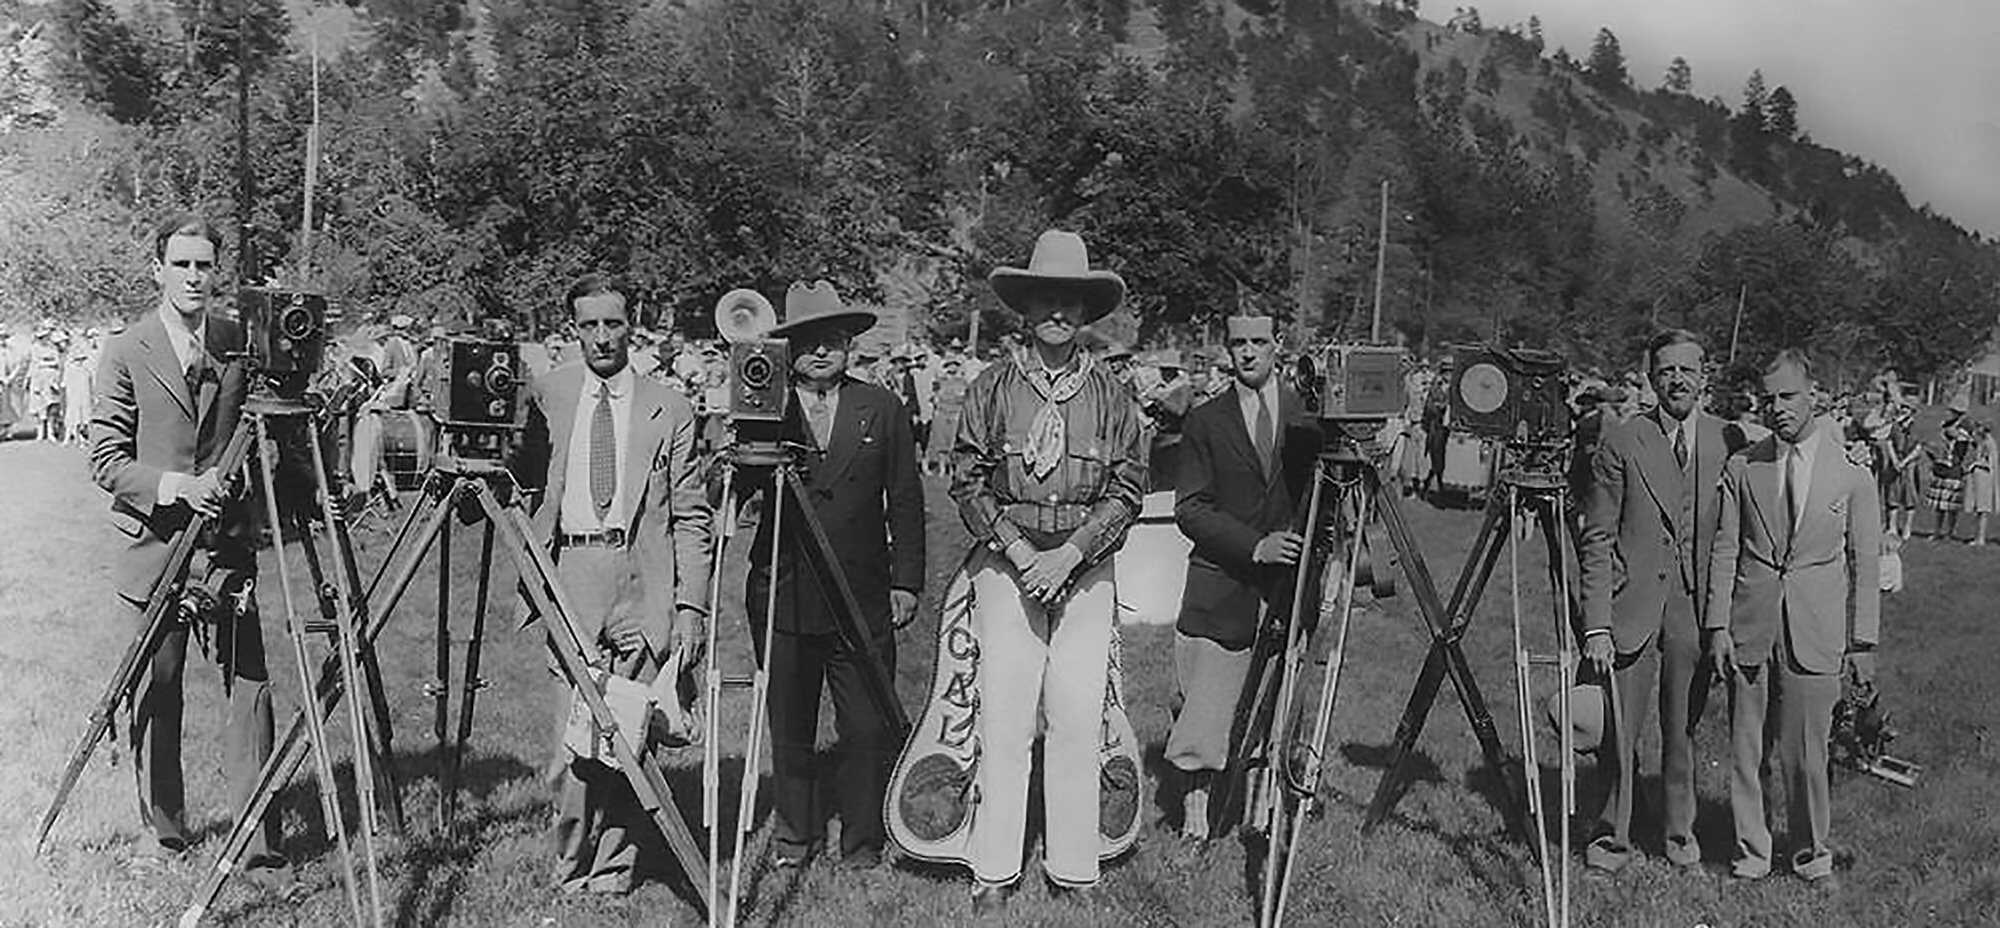 Rushmore-Coolidge-South-Dakota-1927-LOC.jpg